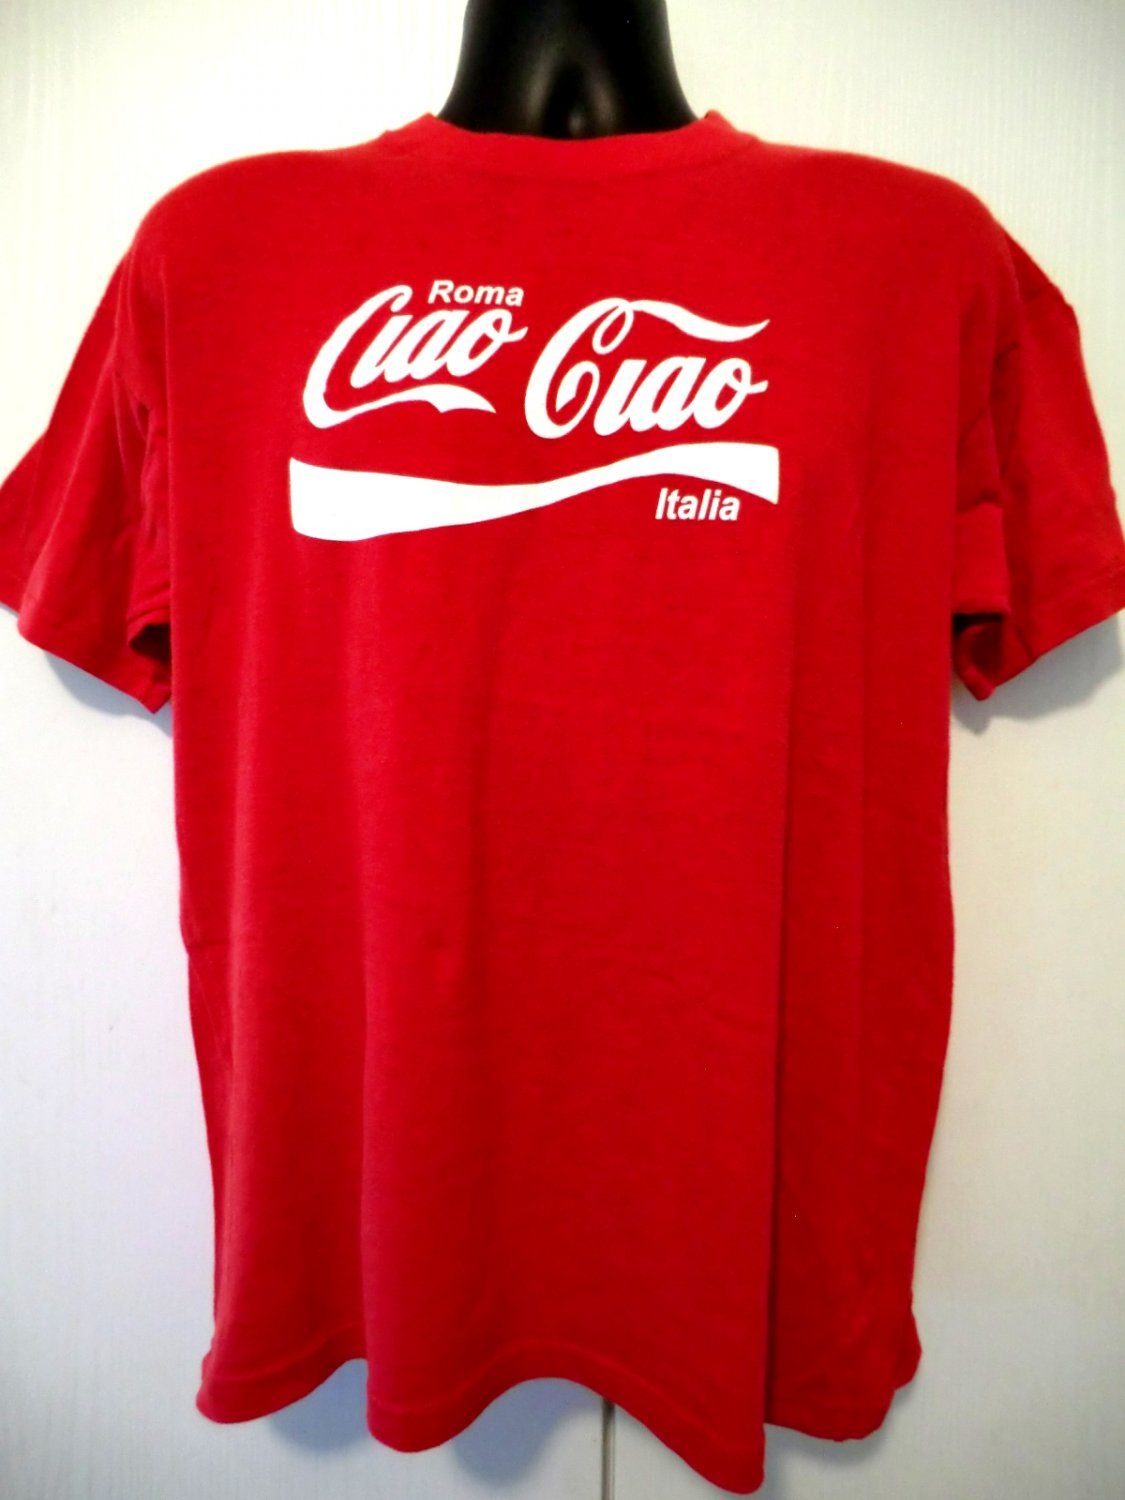 SOLD! Vintage Ciao Ciao Italy / Italia Rome / Roma T-Shirt Size Large